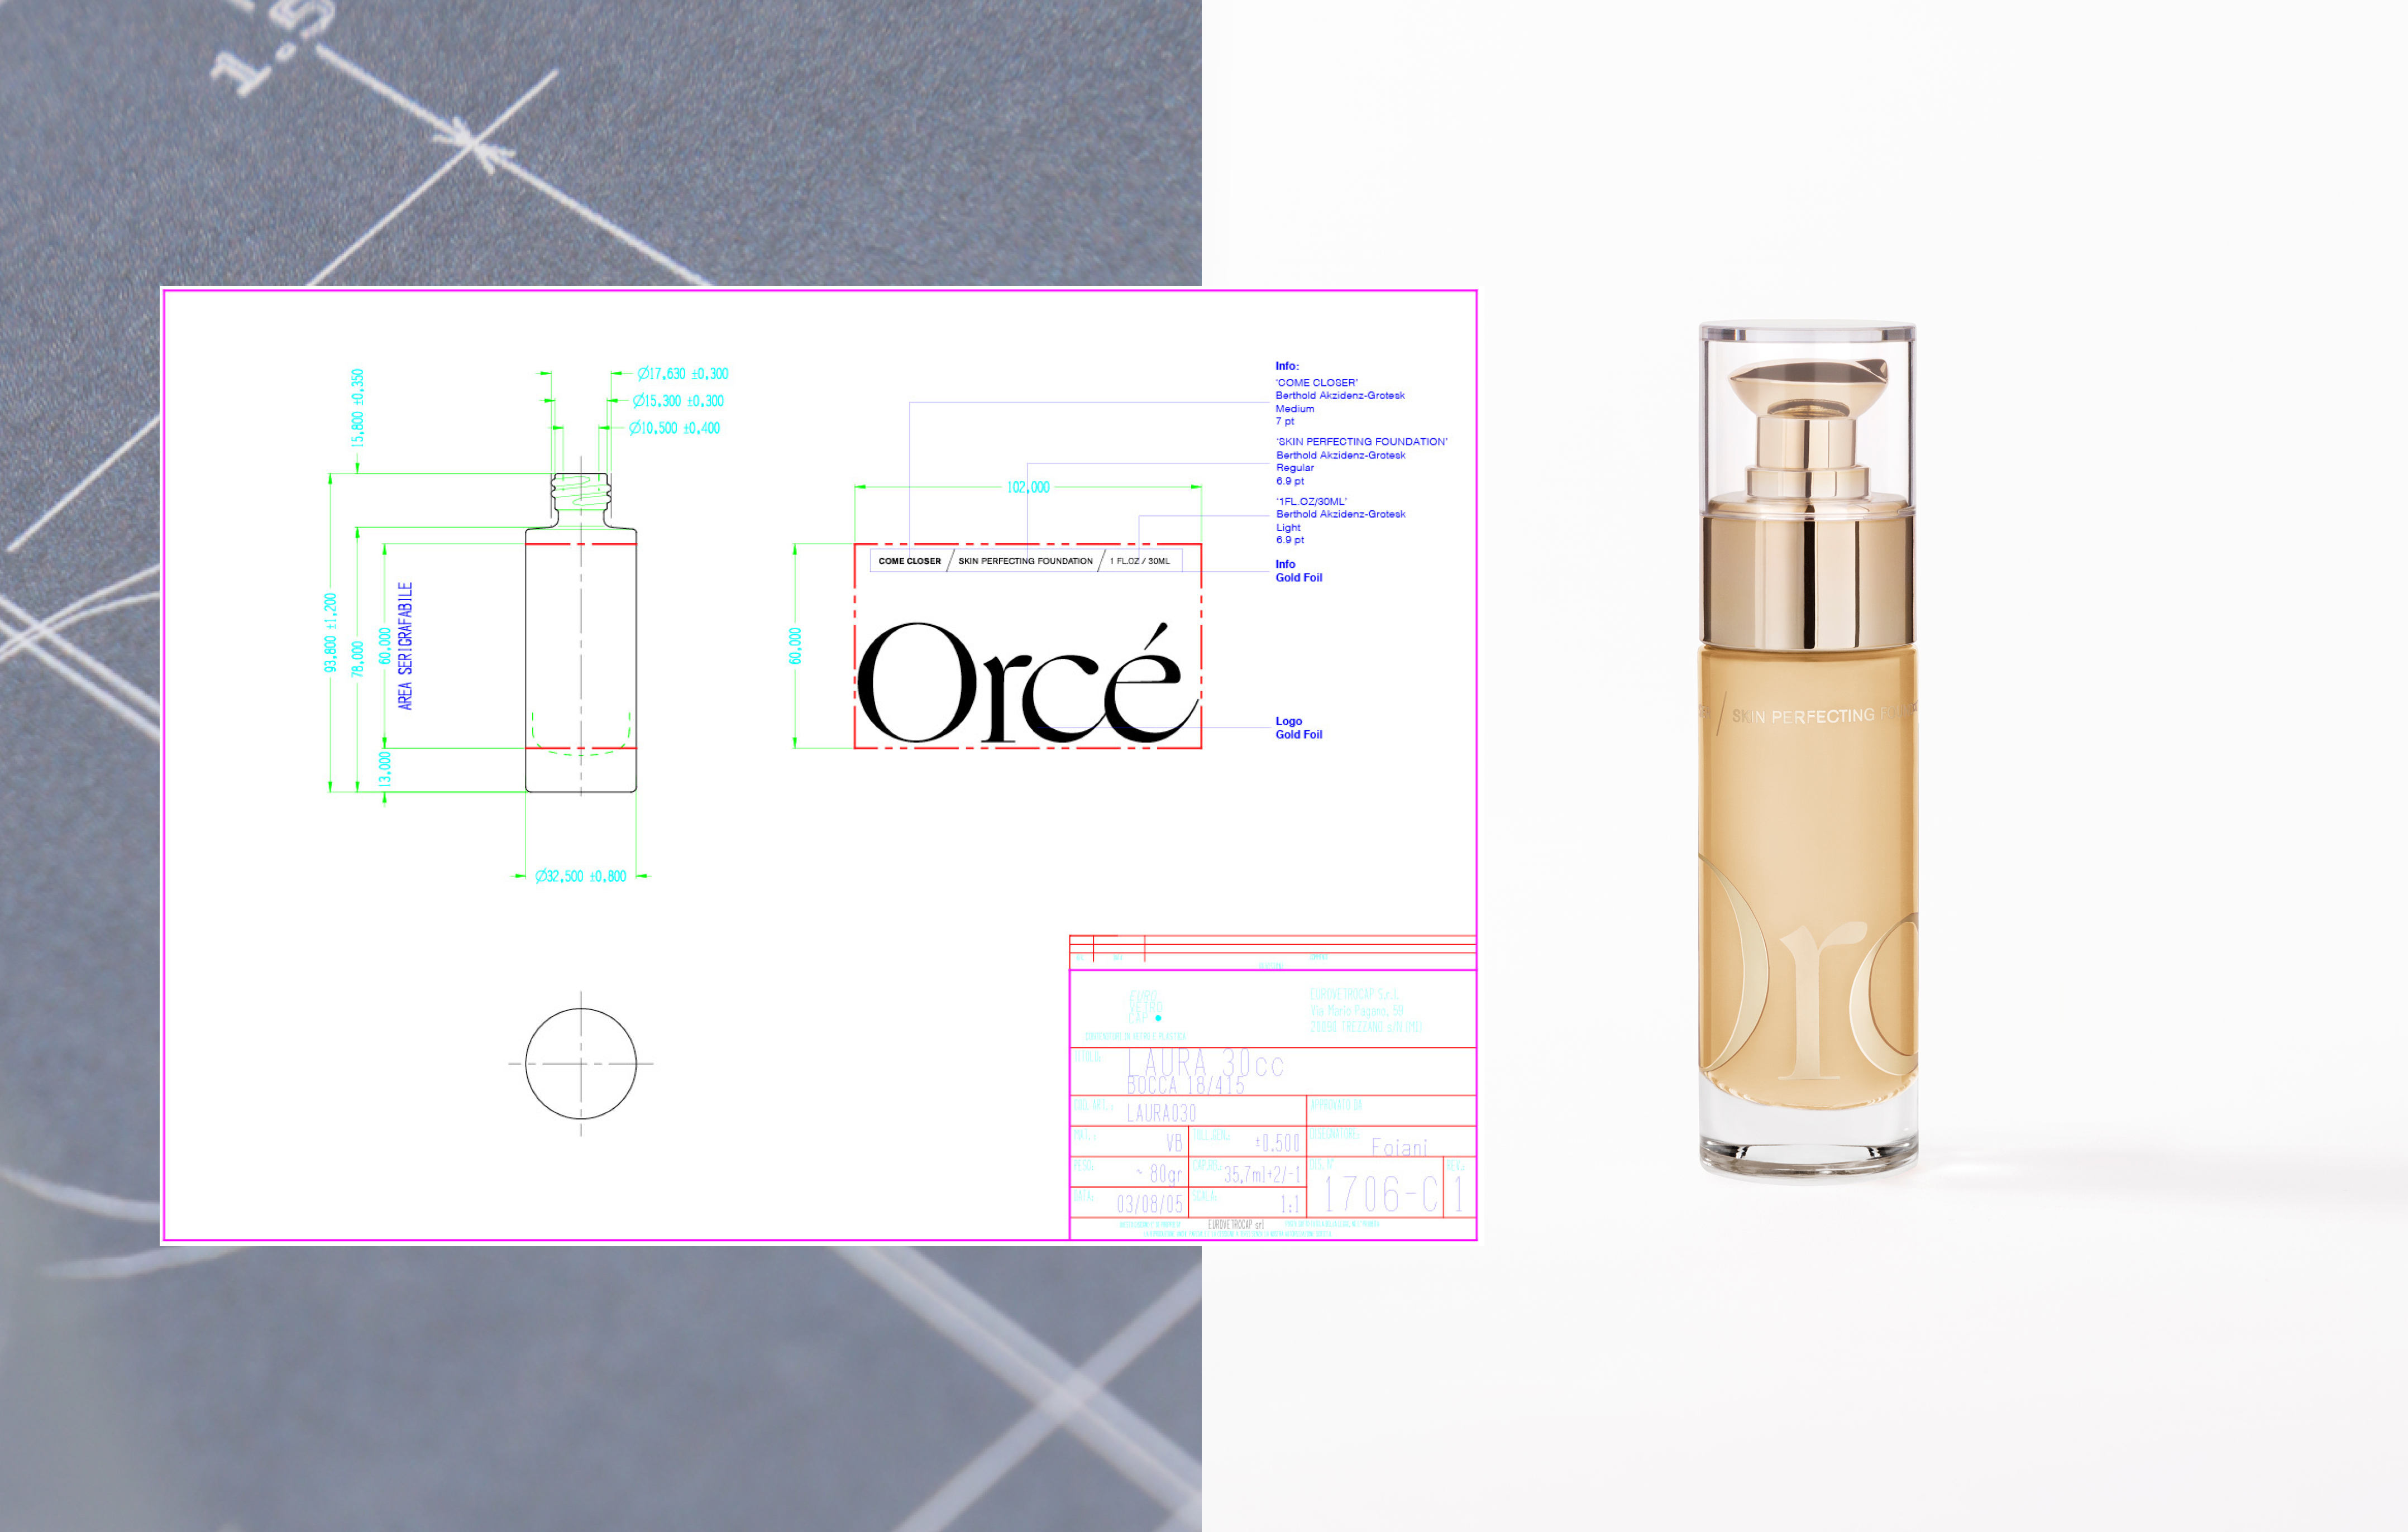 Primary and secondary packaging developed and created for make up brand, Orcé's new products.